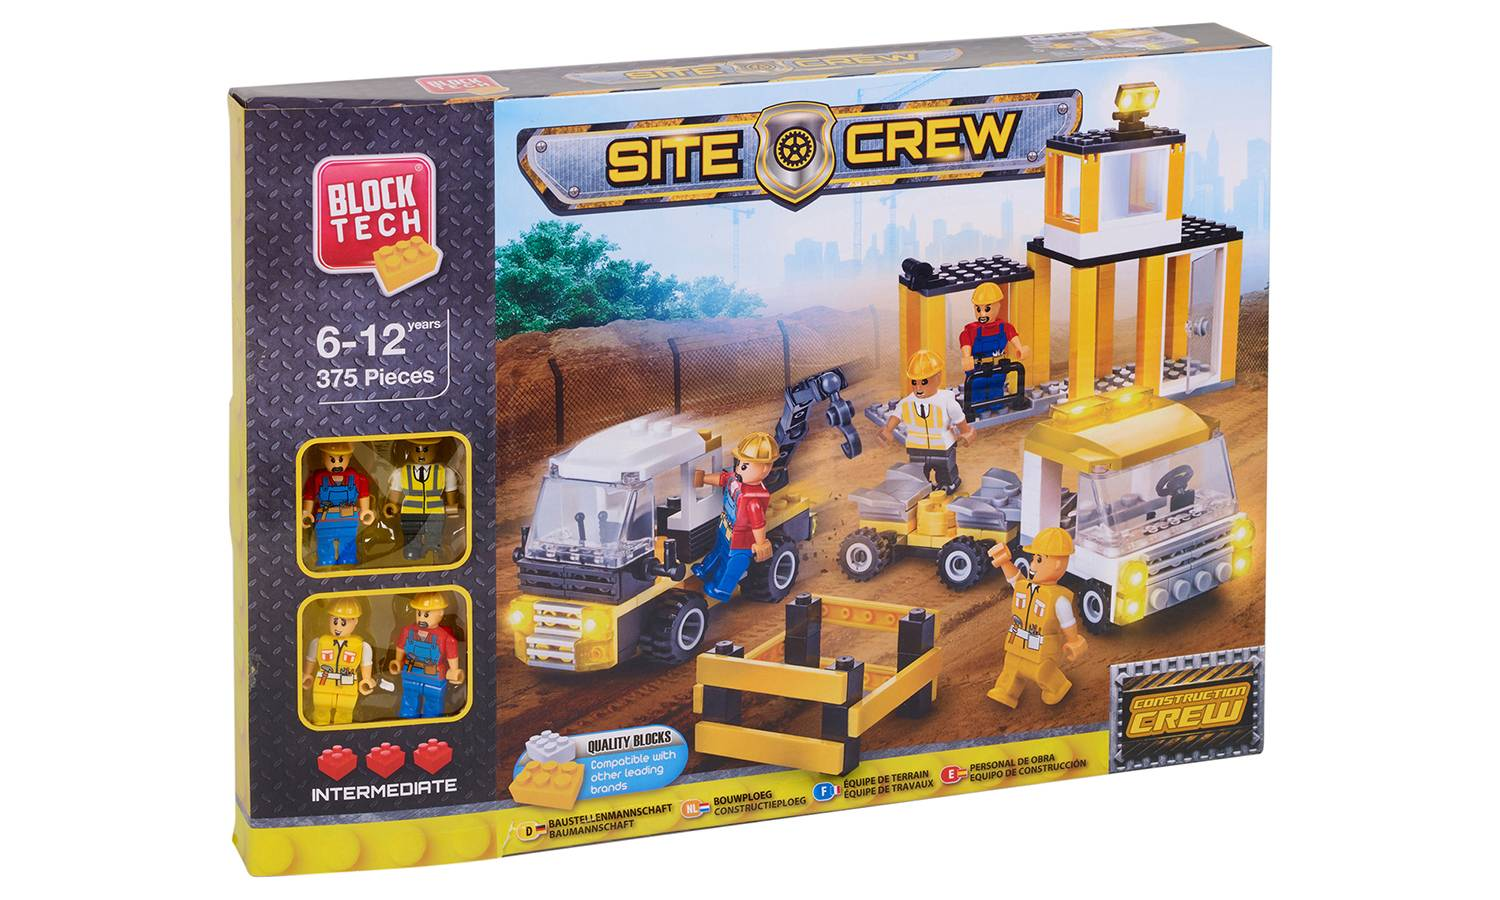 Groupon Goods Block Tech Construction Bricks Sets: Construction Site Crew